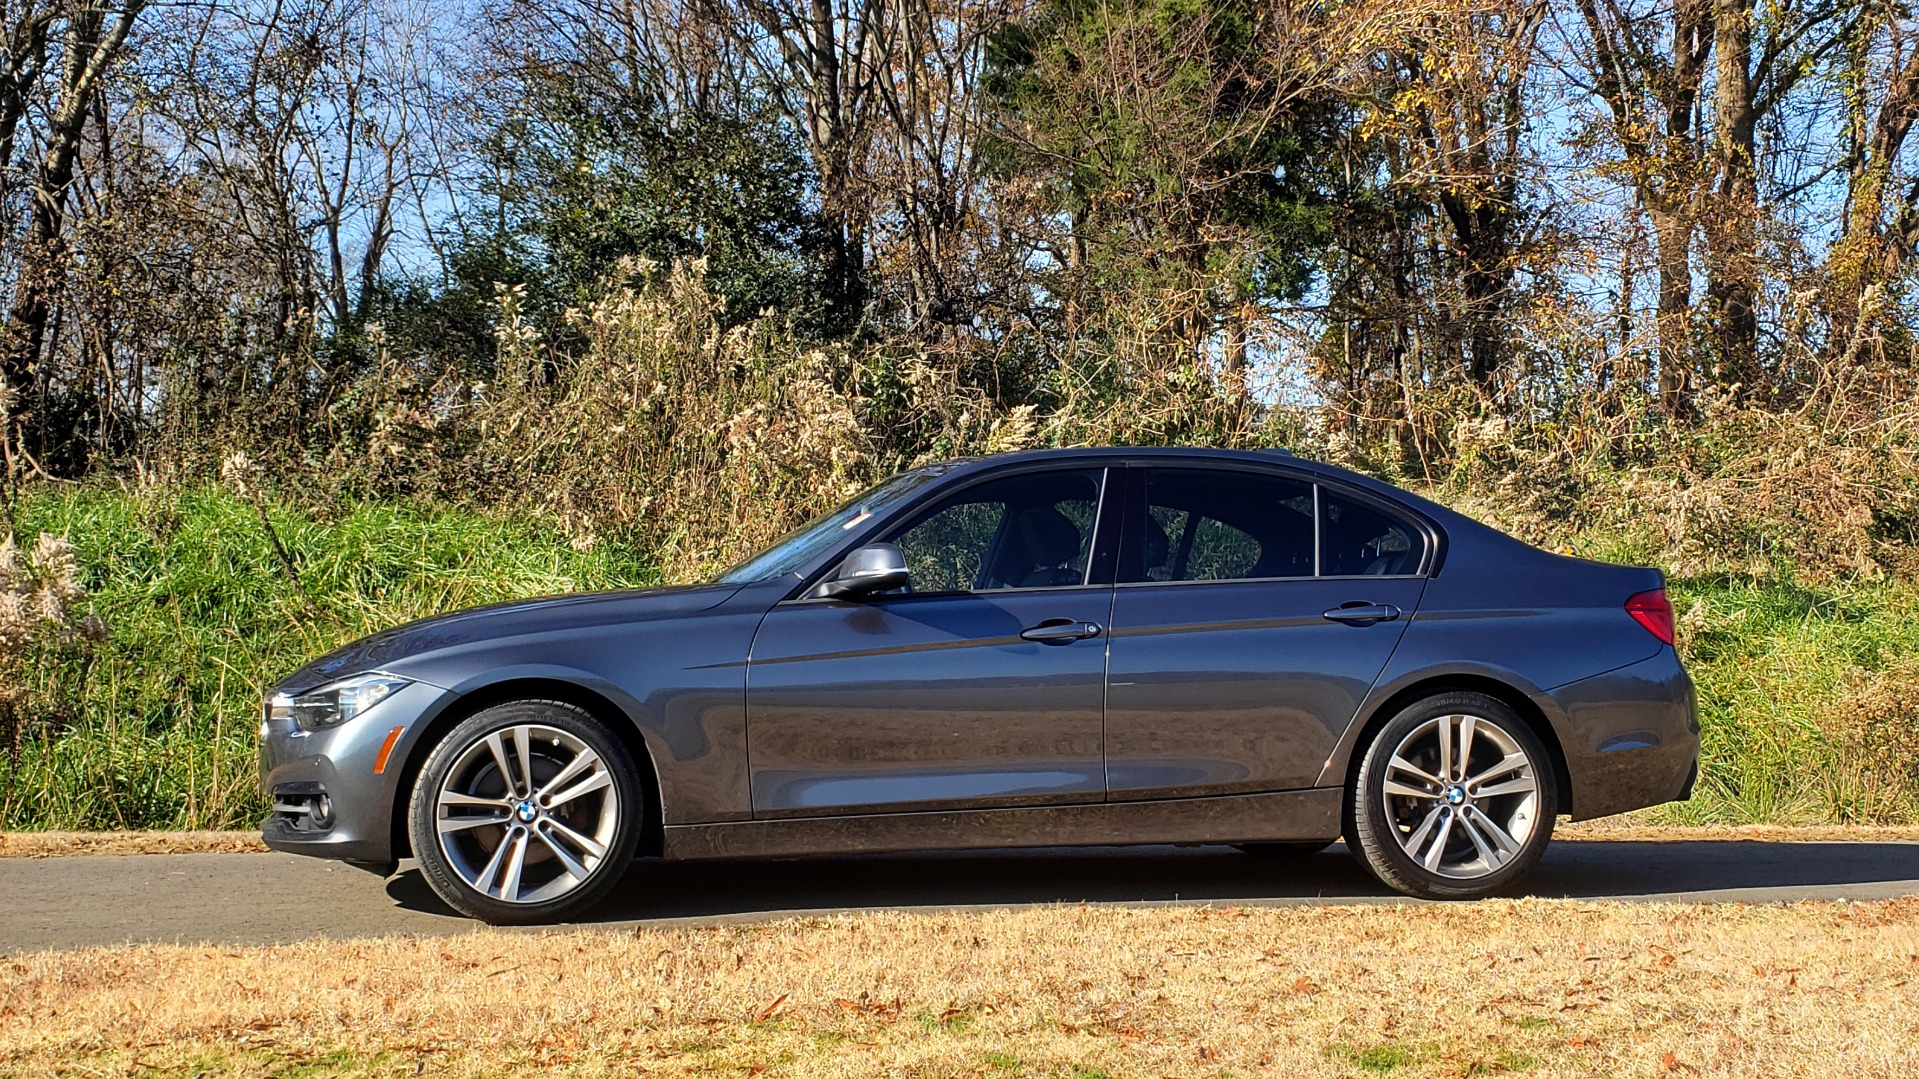 Used 2016 BMW 3 SERIES 328I / DRVR ASST / SUNROOF / PARK DIST CNTRL / REARVIEW for sale Sold at Formula Imports in Charlotte NC 28227 2